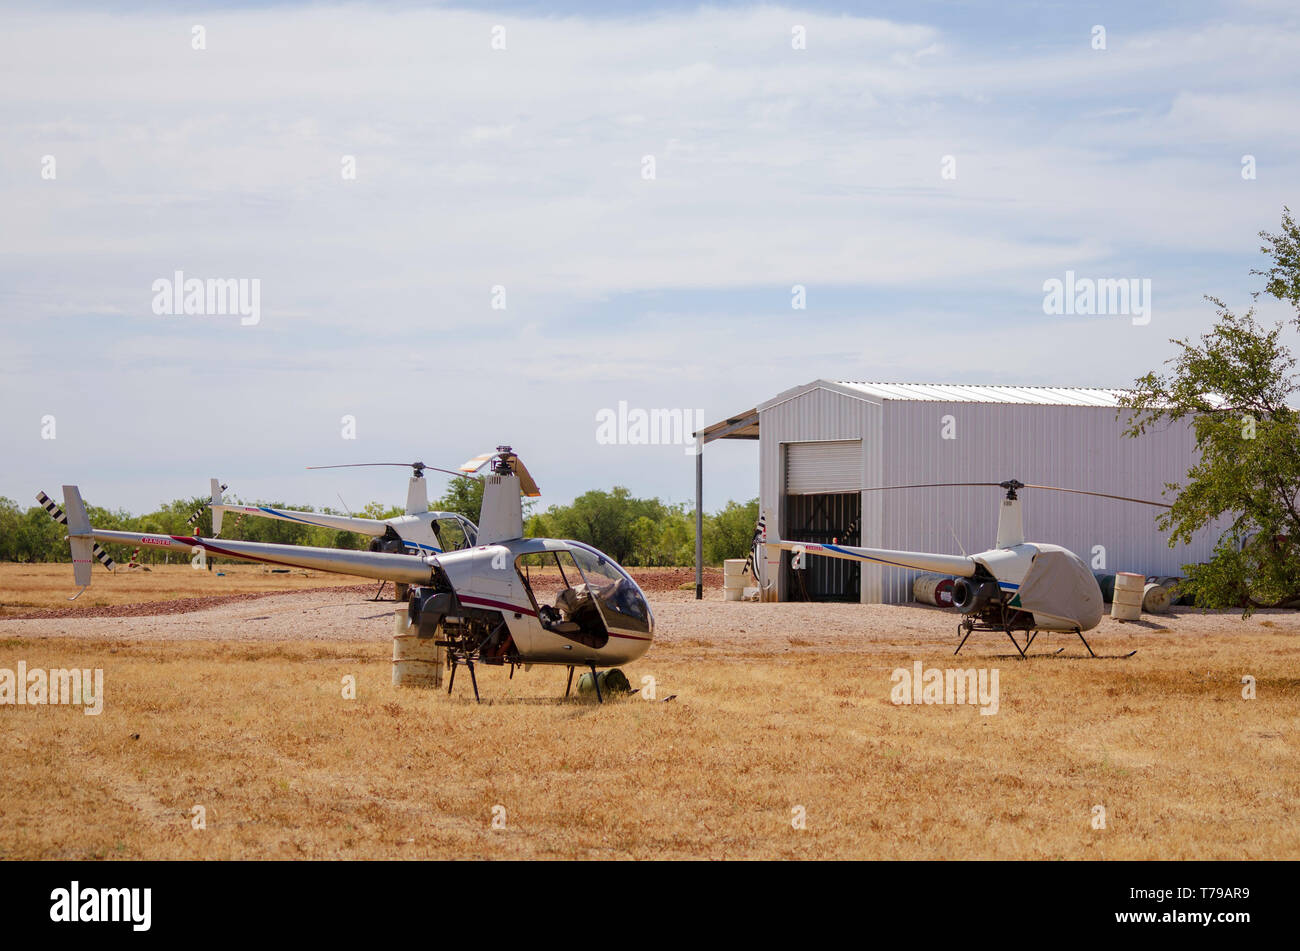 Helicopters ready for the muster on a cattle station - Stock Image